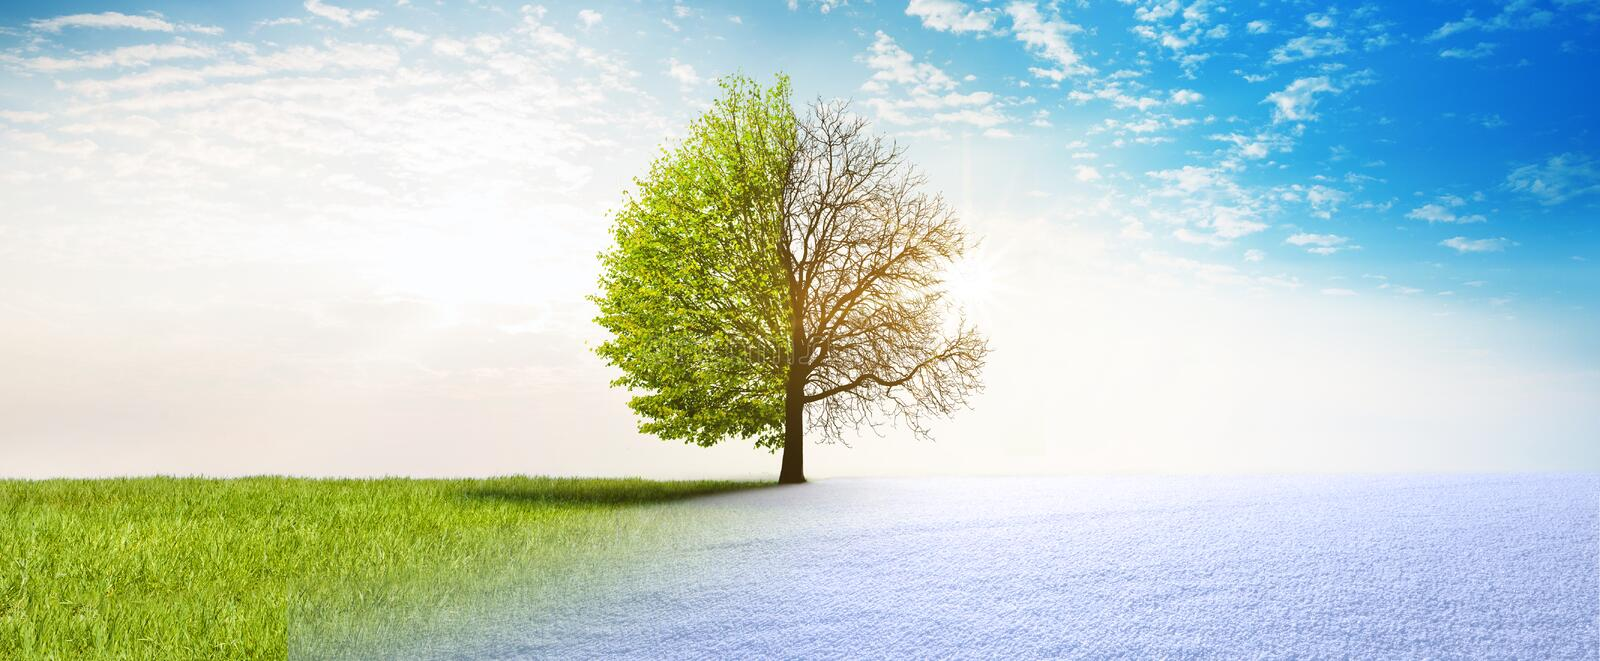 Spring winter change royalty free illustration